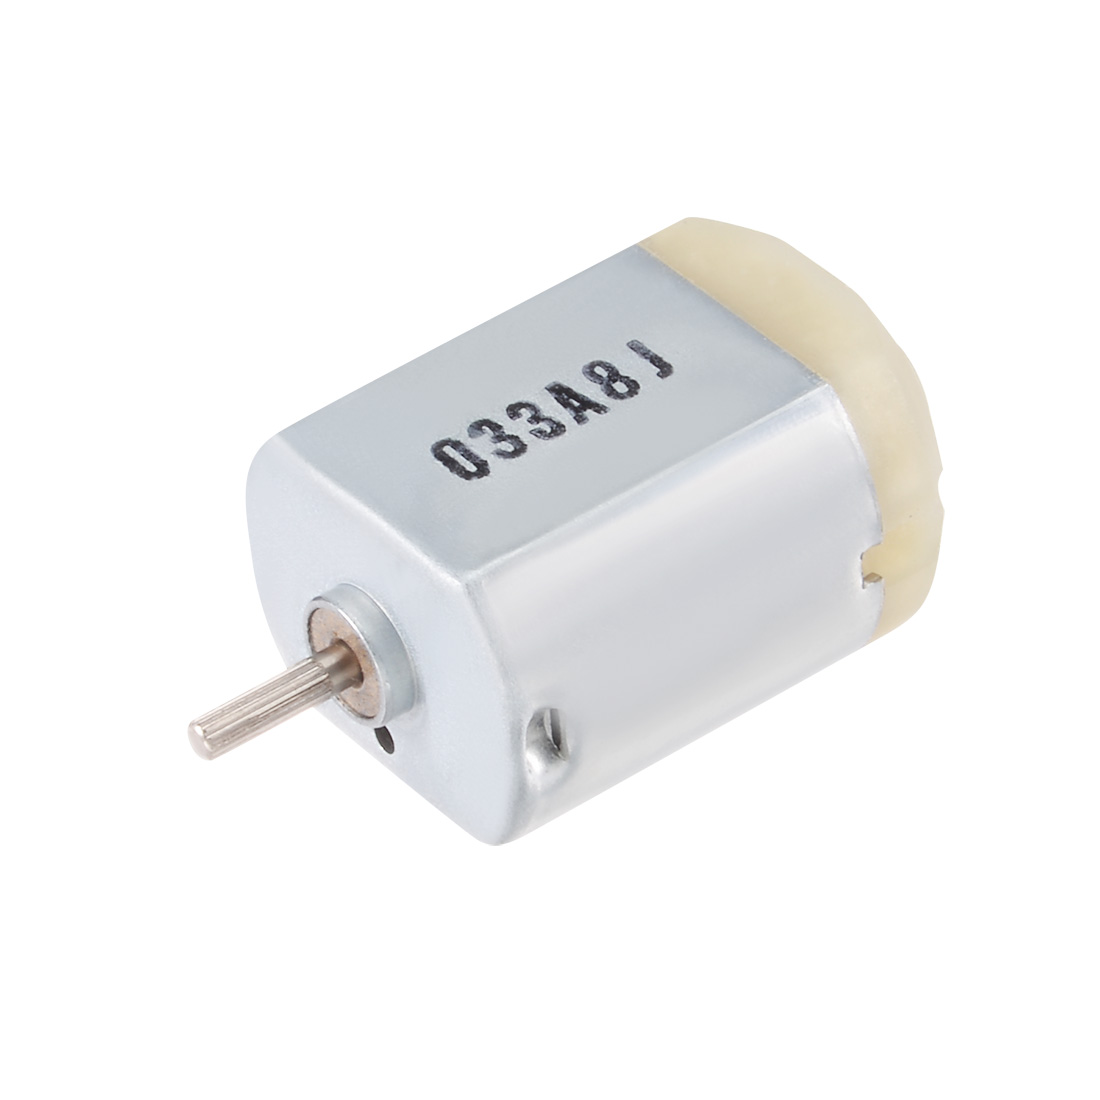 Small Motor DC 12V 8400RPM High Speed Motor for DIY Hobby Toy Car Remote Control